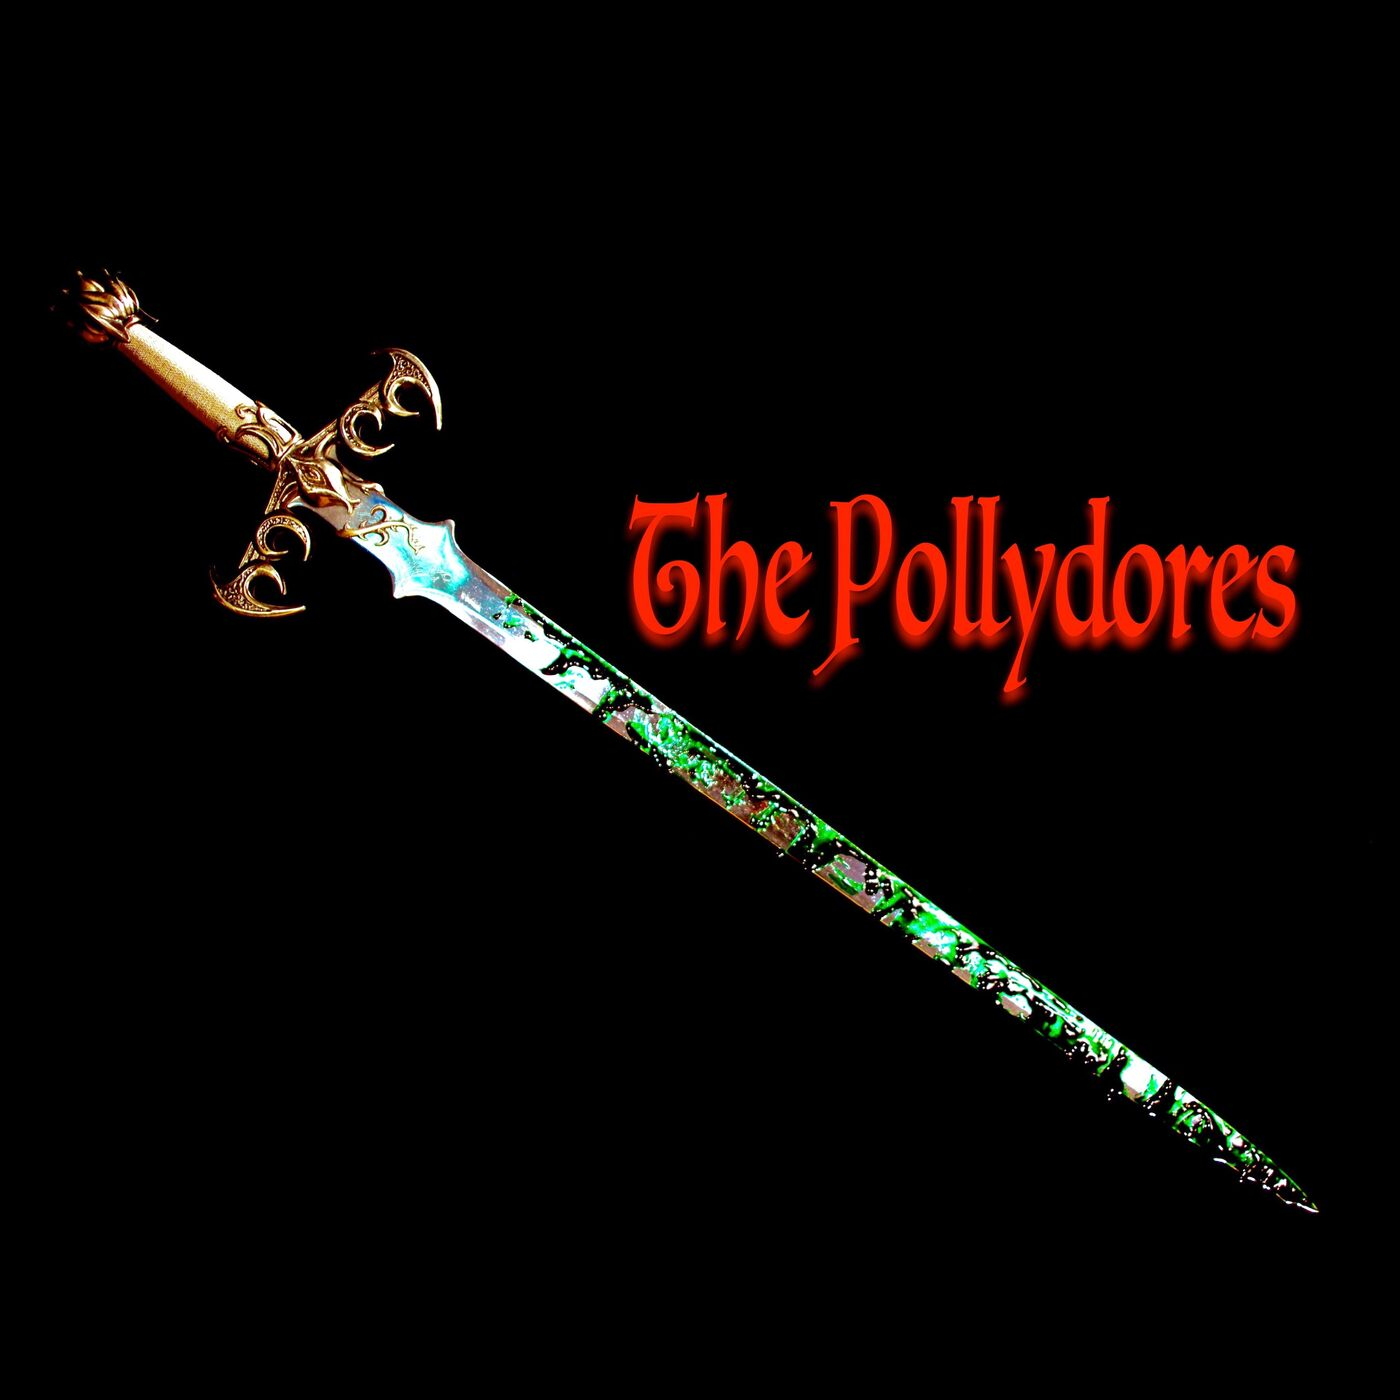 Chapter 3 The Pollydores